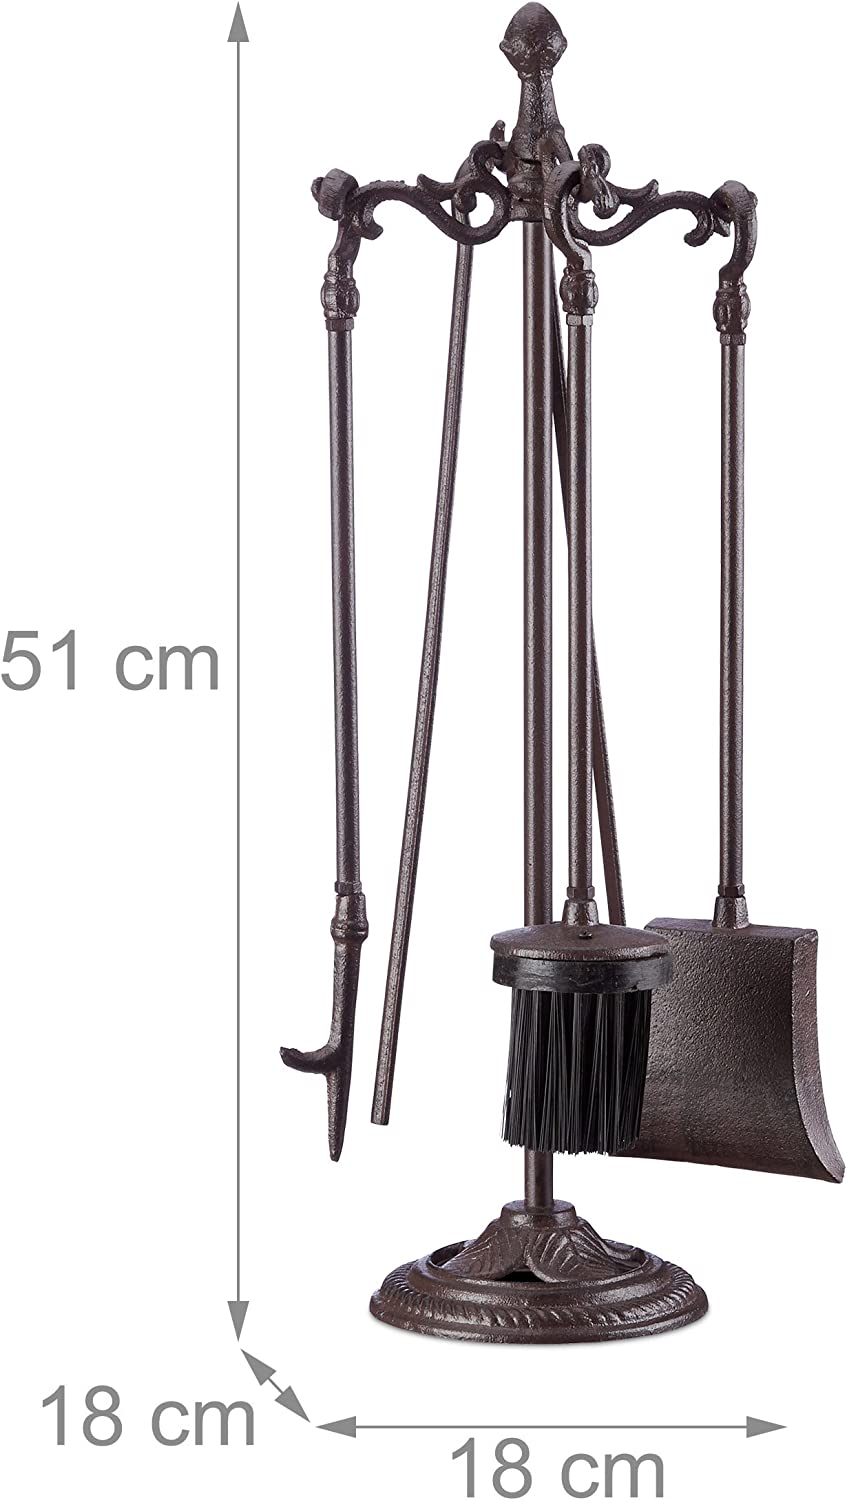 72 x 21 x 12.5 cm 4-Piece Fireplace Companion Set with Shovel Black Relaxdays Modern Cast Fire Irons Knight Broom Poker and Rack